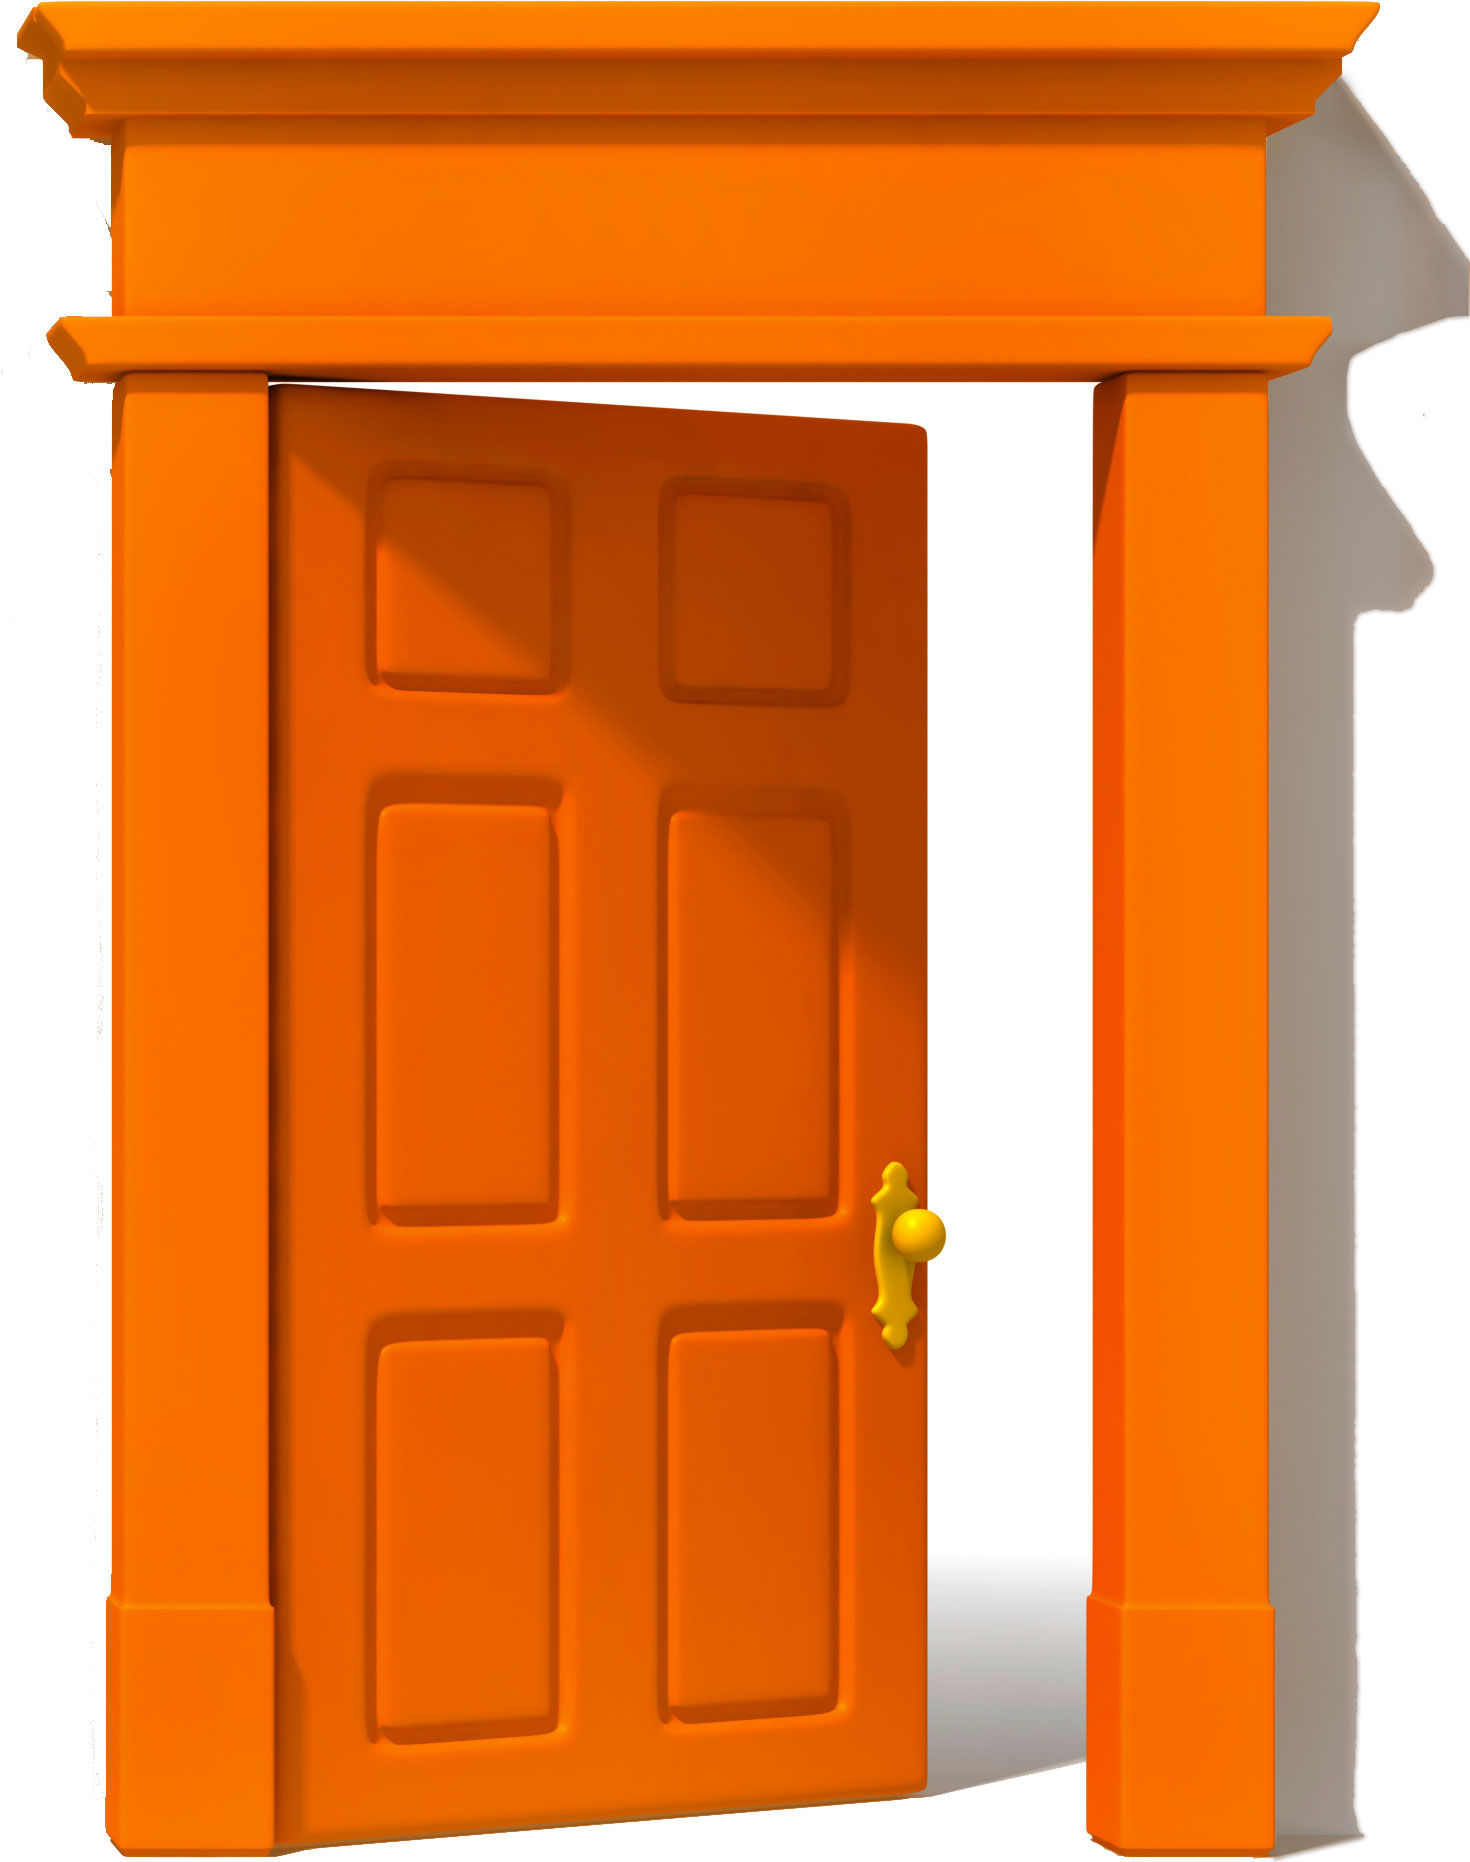 Orange Door & Phot...